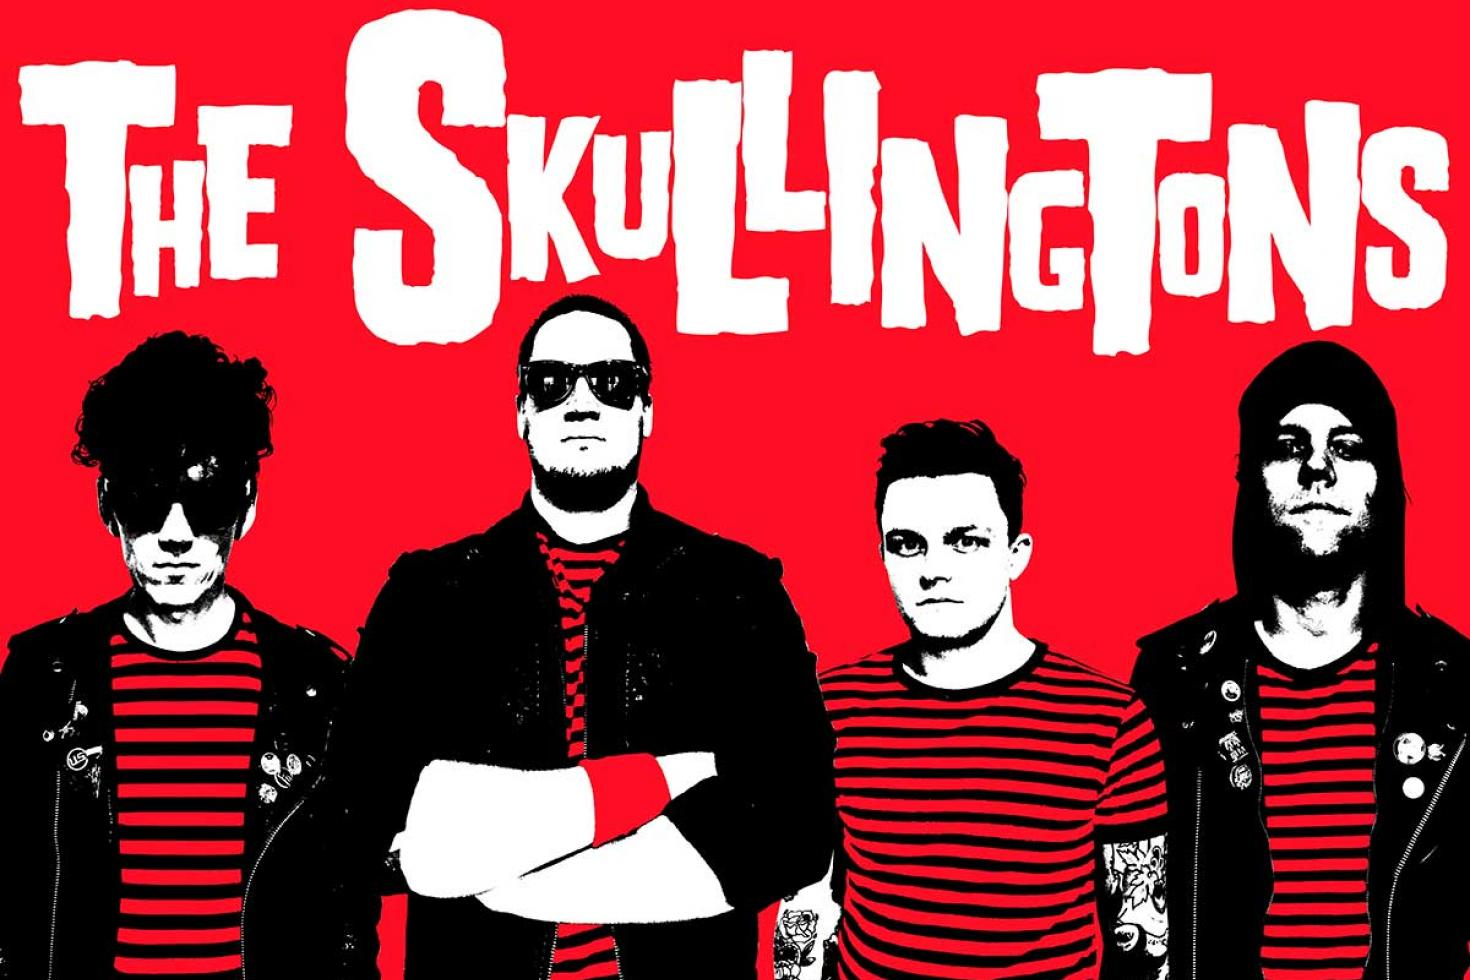 PREMIERE: The Skullingtons share video for 'Highschool of the Dead'